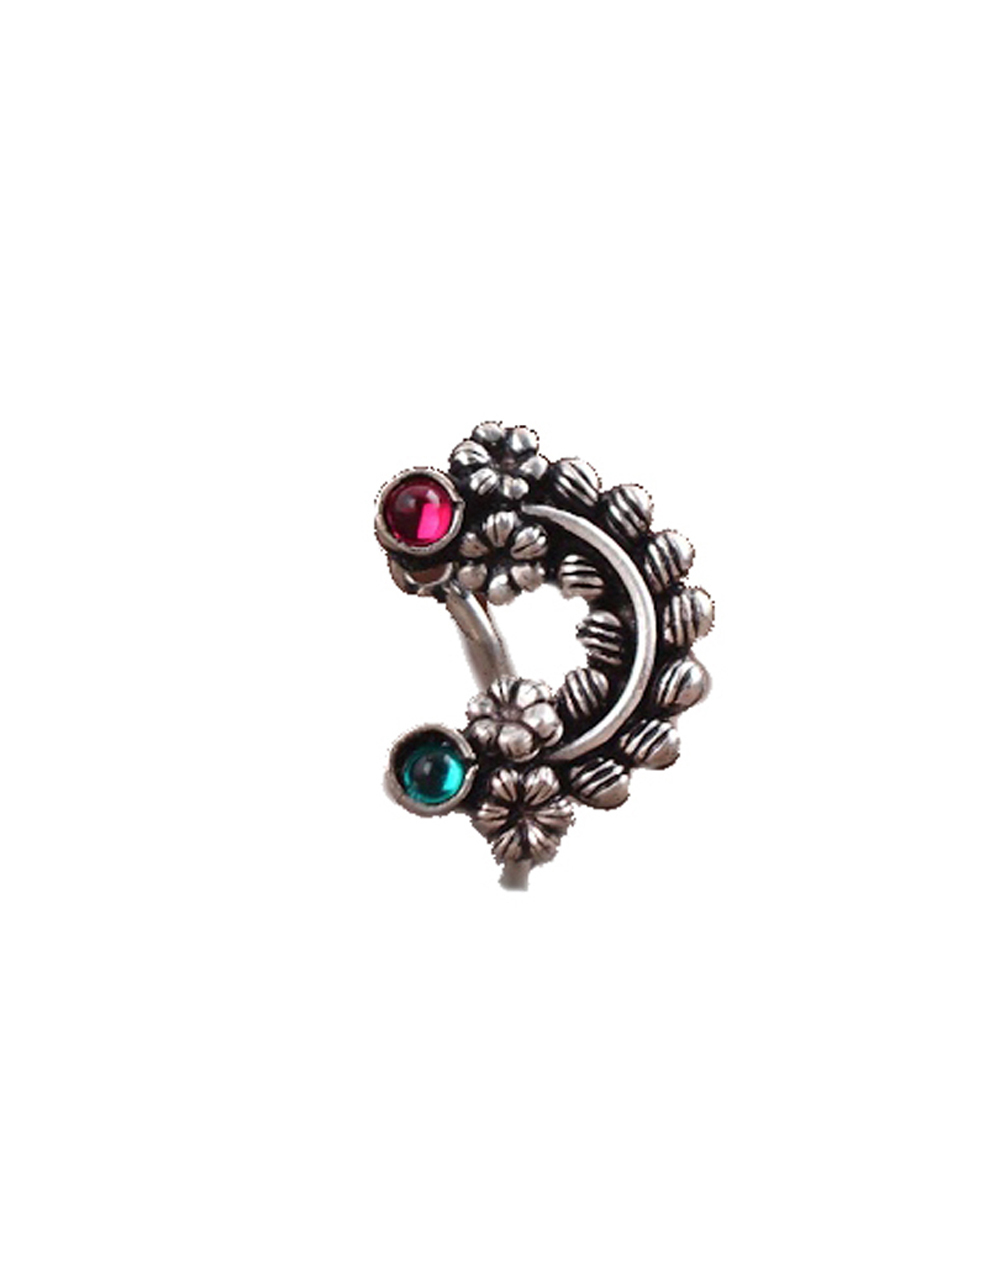 Oxidised Silver Nath, Traditional Maharashtrian Nath, Nose Pin, Clip-On For Women {Clip-On Nath}